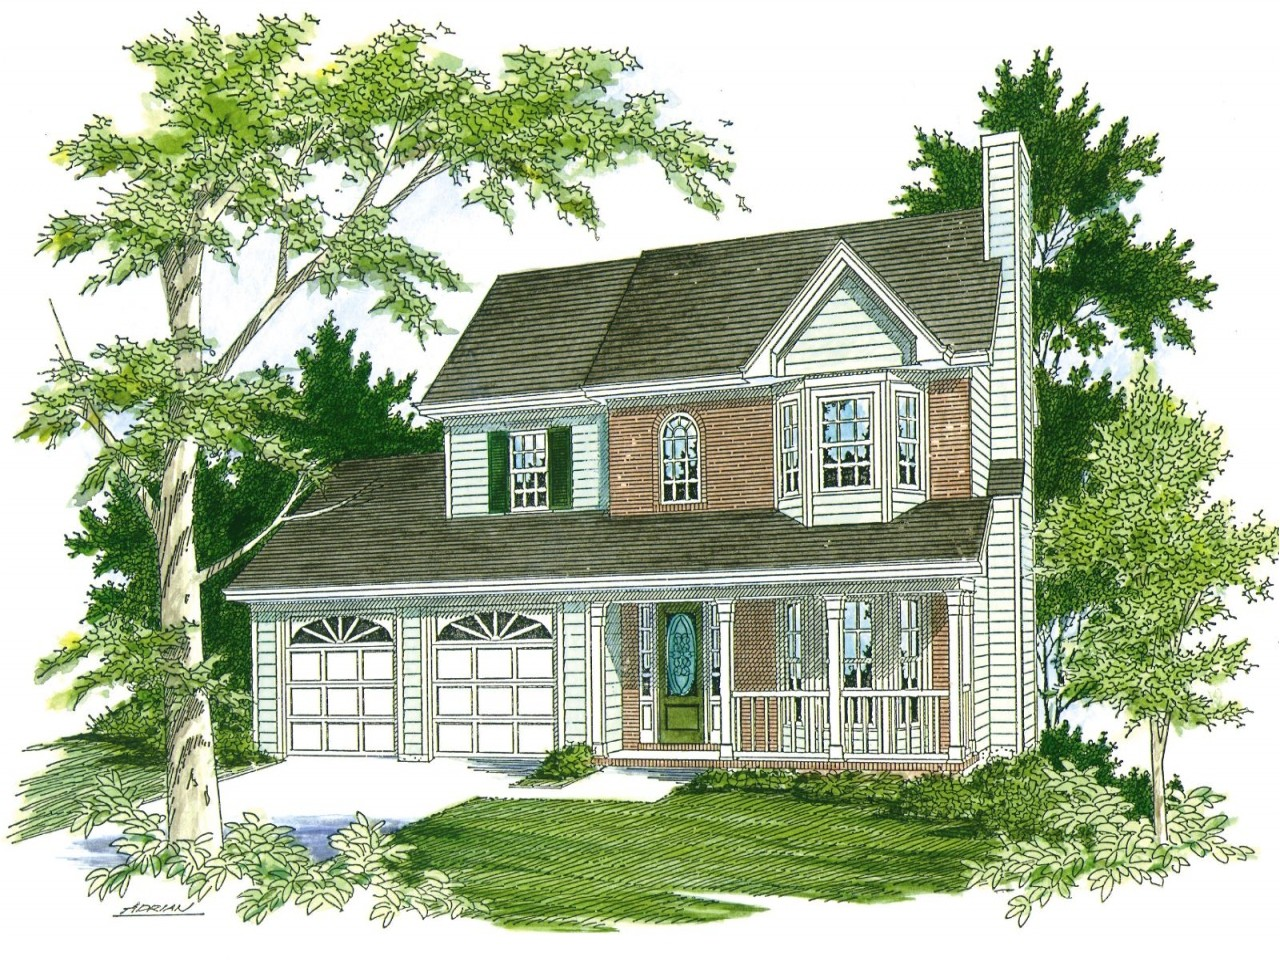 b1751278417175c8 house plans with cost estimates to build mediterranean house plans